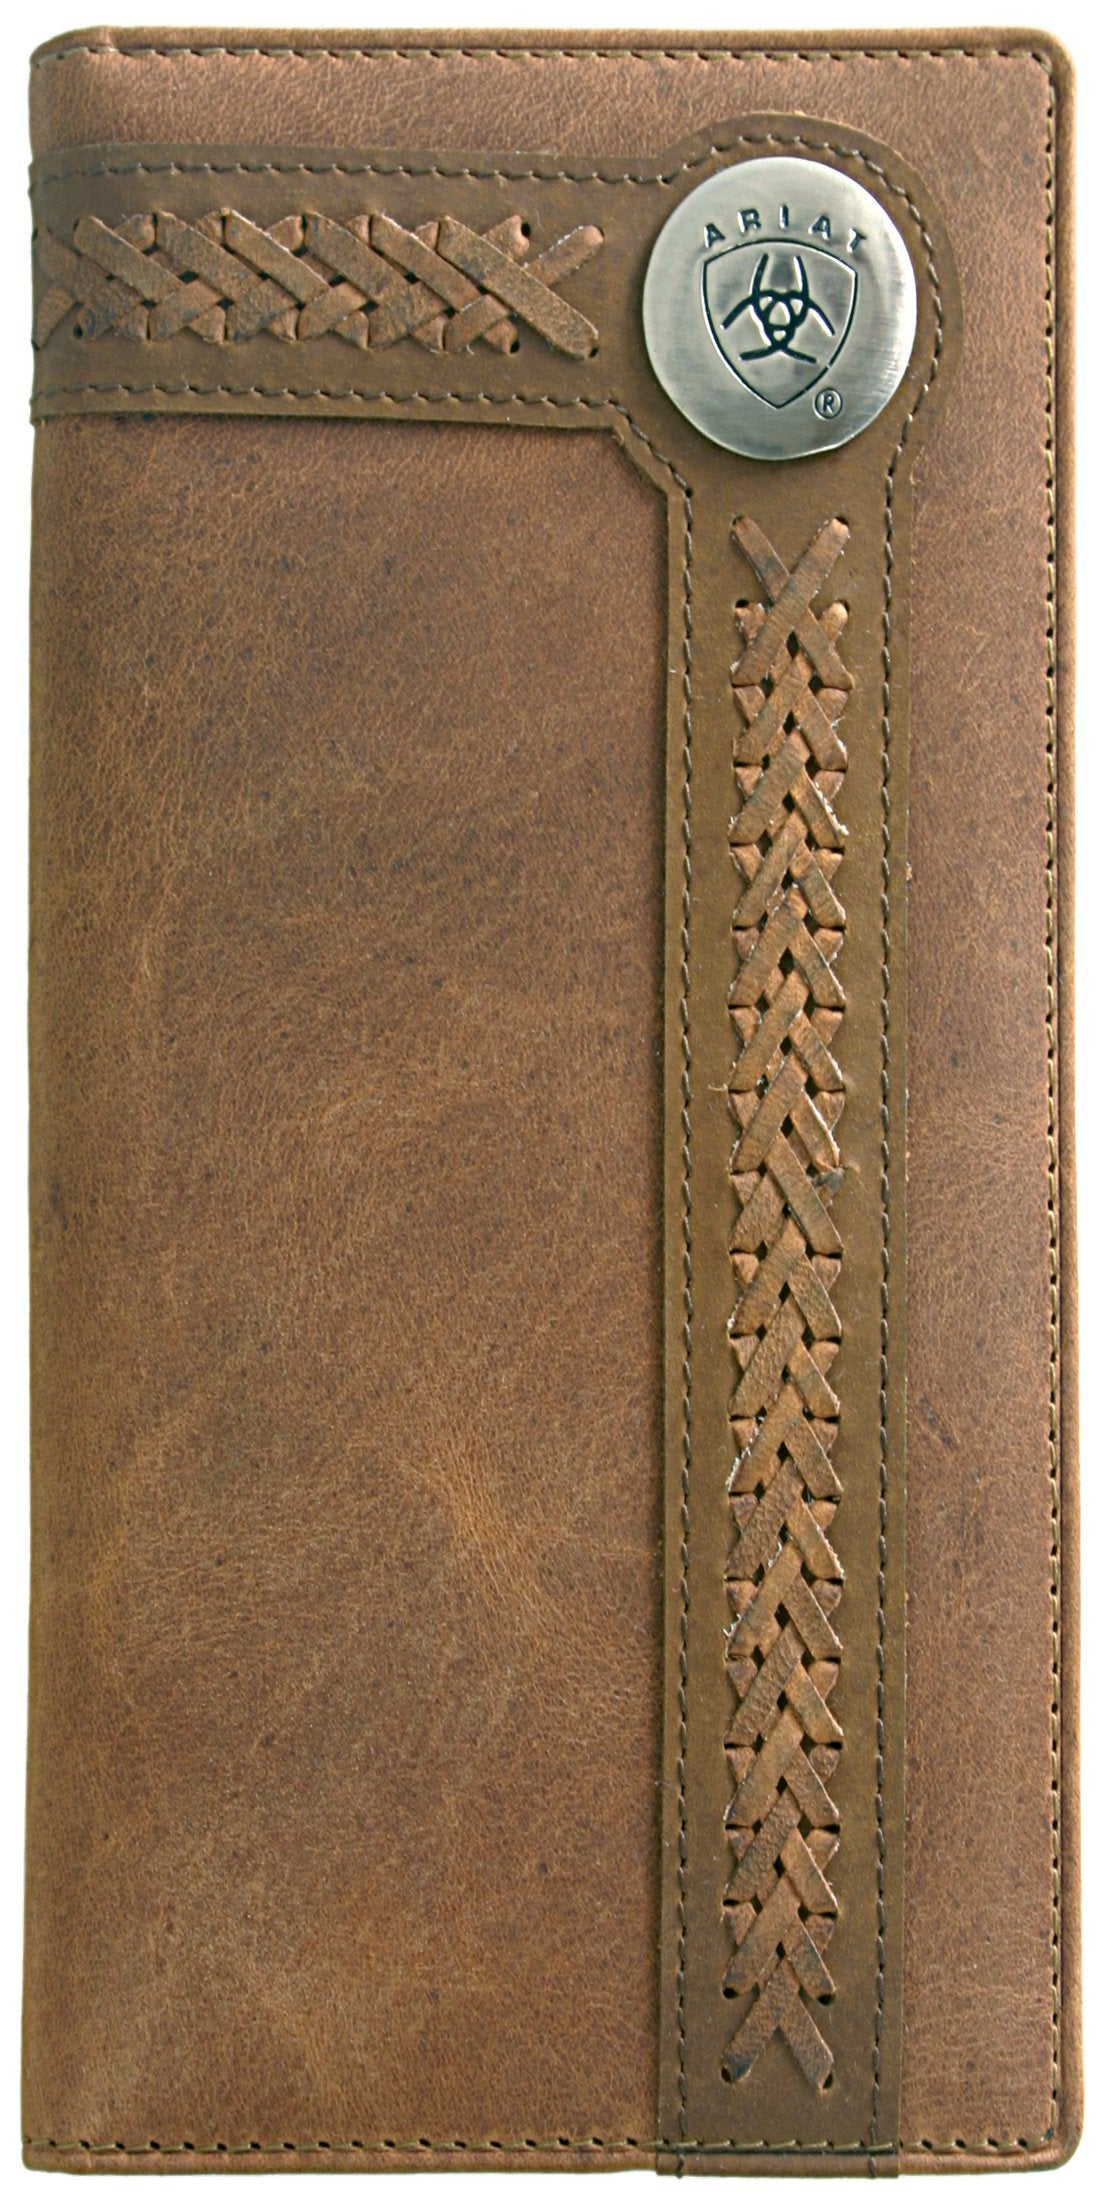 Ariat Rodeo Laced Wallet